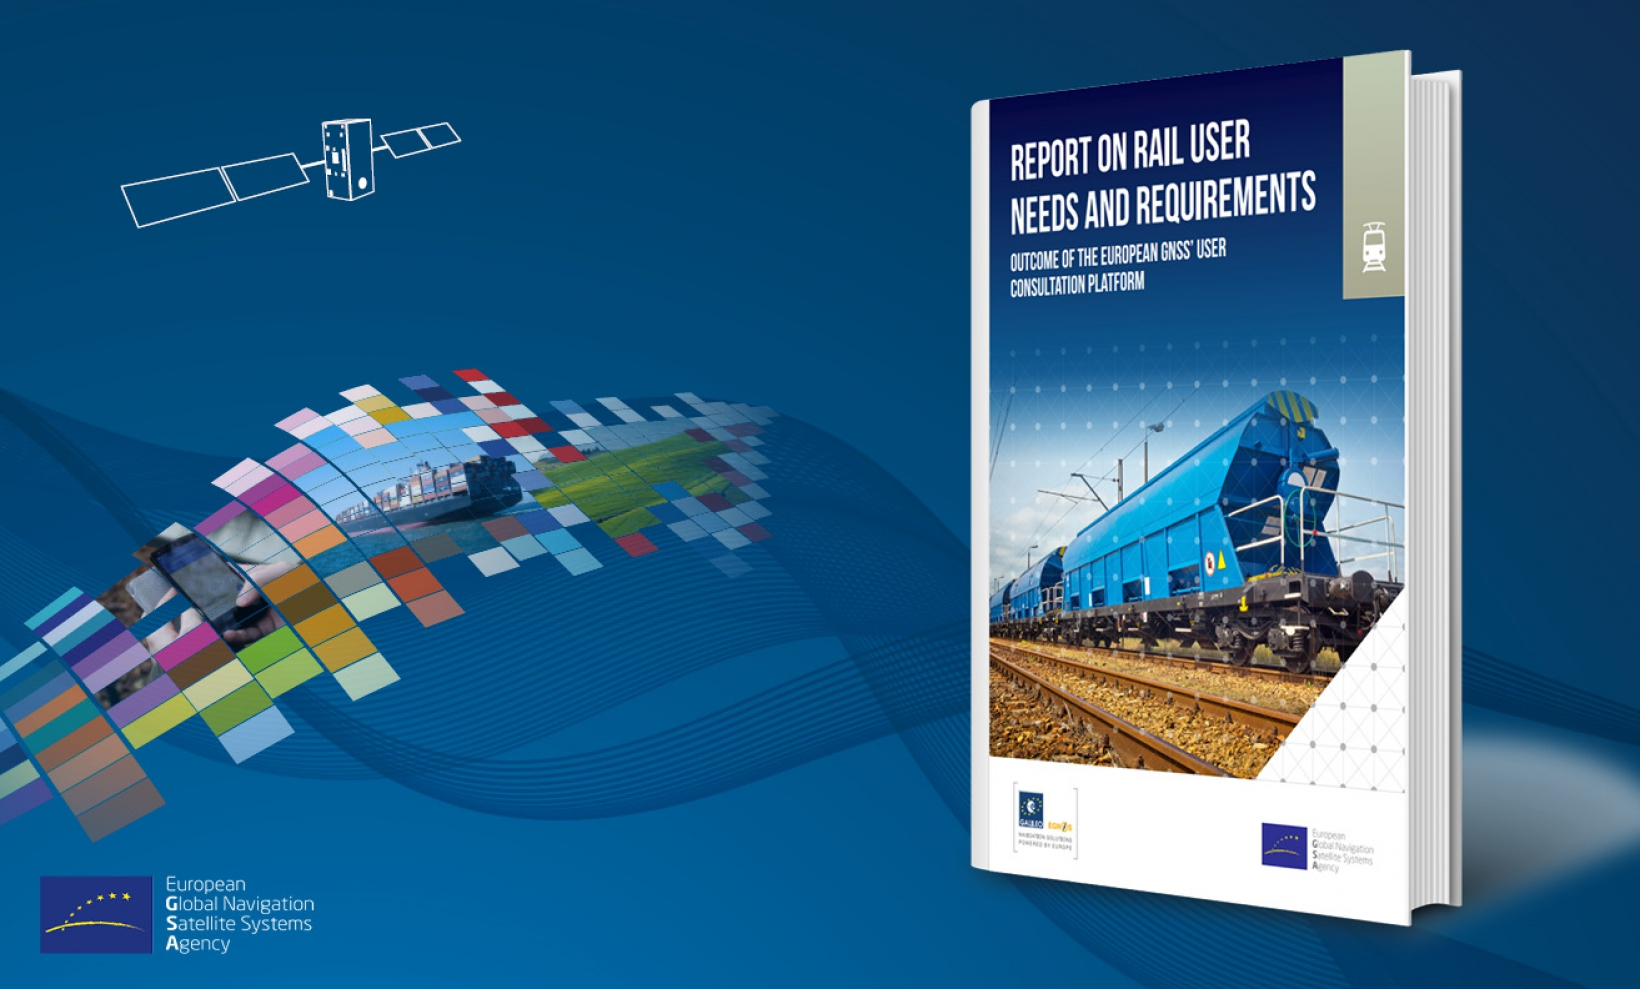 The report looks at the current market and technology trends for GNSS in the rail sector.